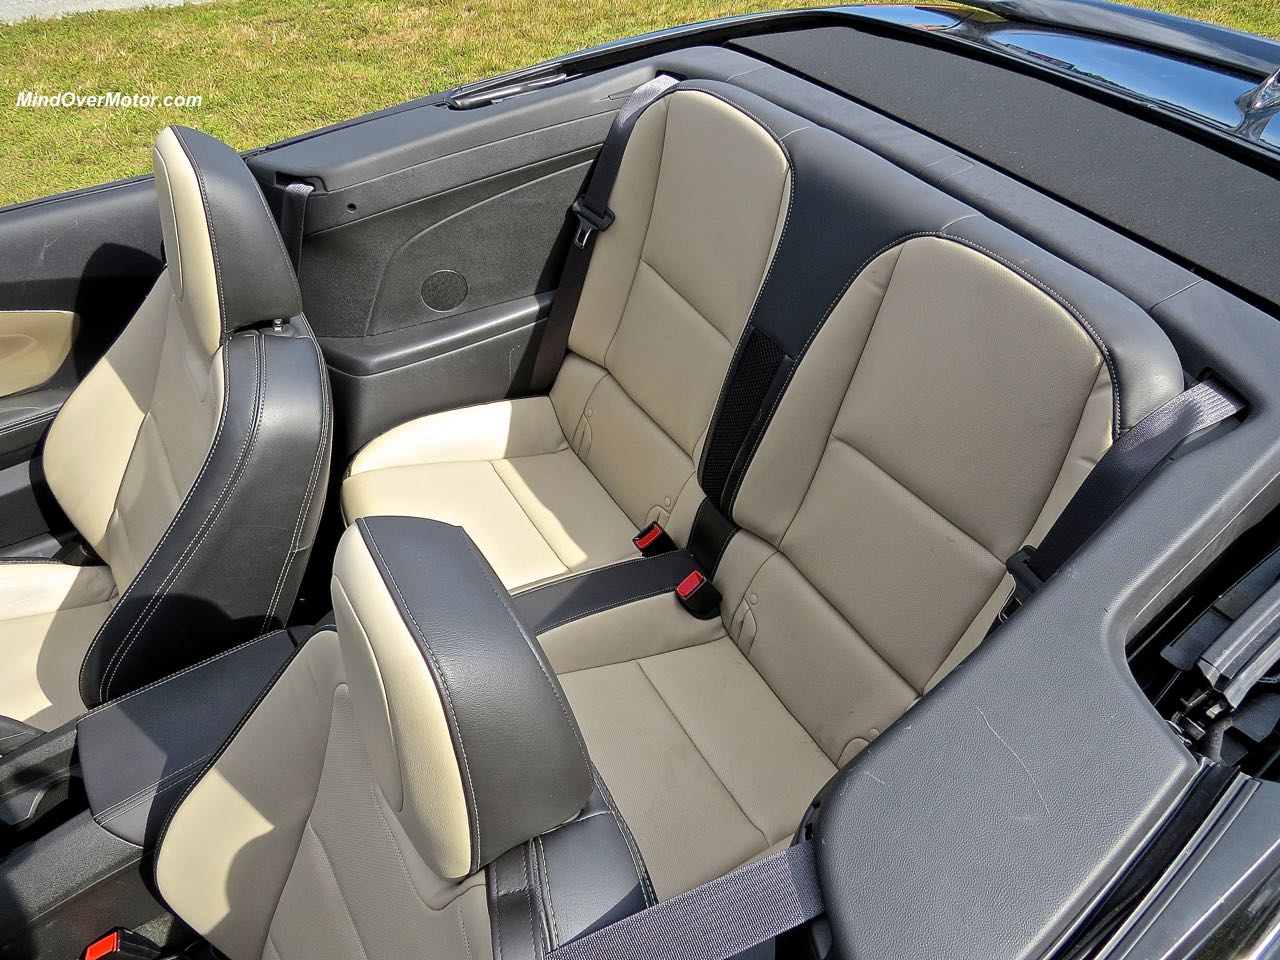 2015 Chevrolet Camaro Convertible Rear Seats